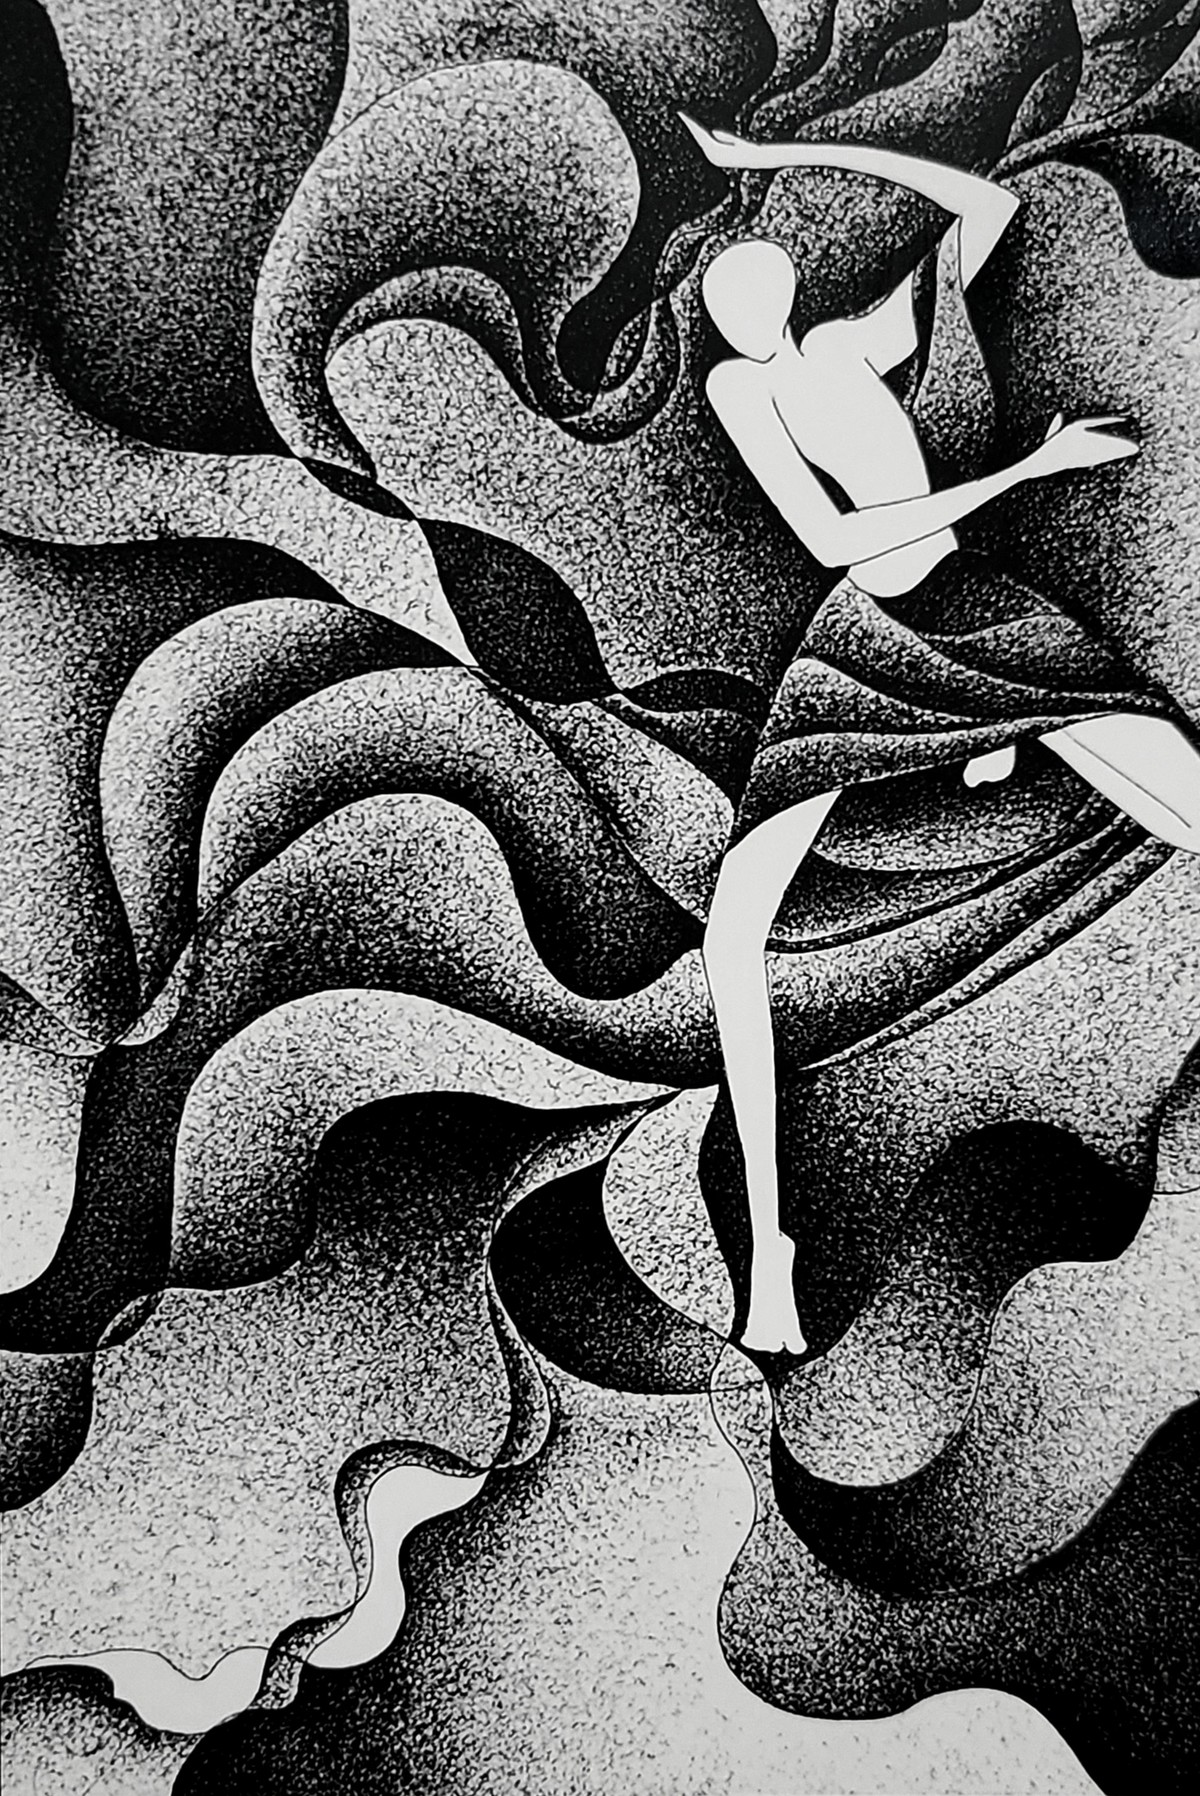 Power of gesture by Reena Tomar, Expressionism Drawing, Pen & Ink on Canvas, Eerie Black color